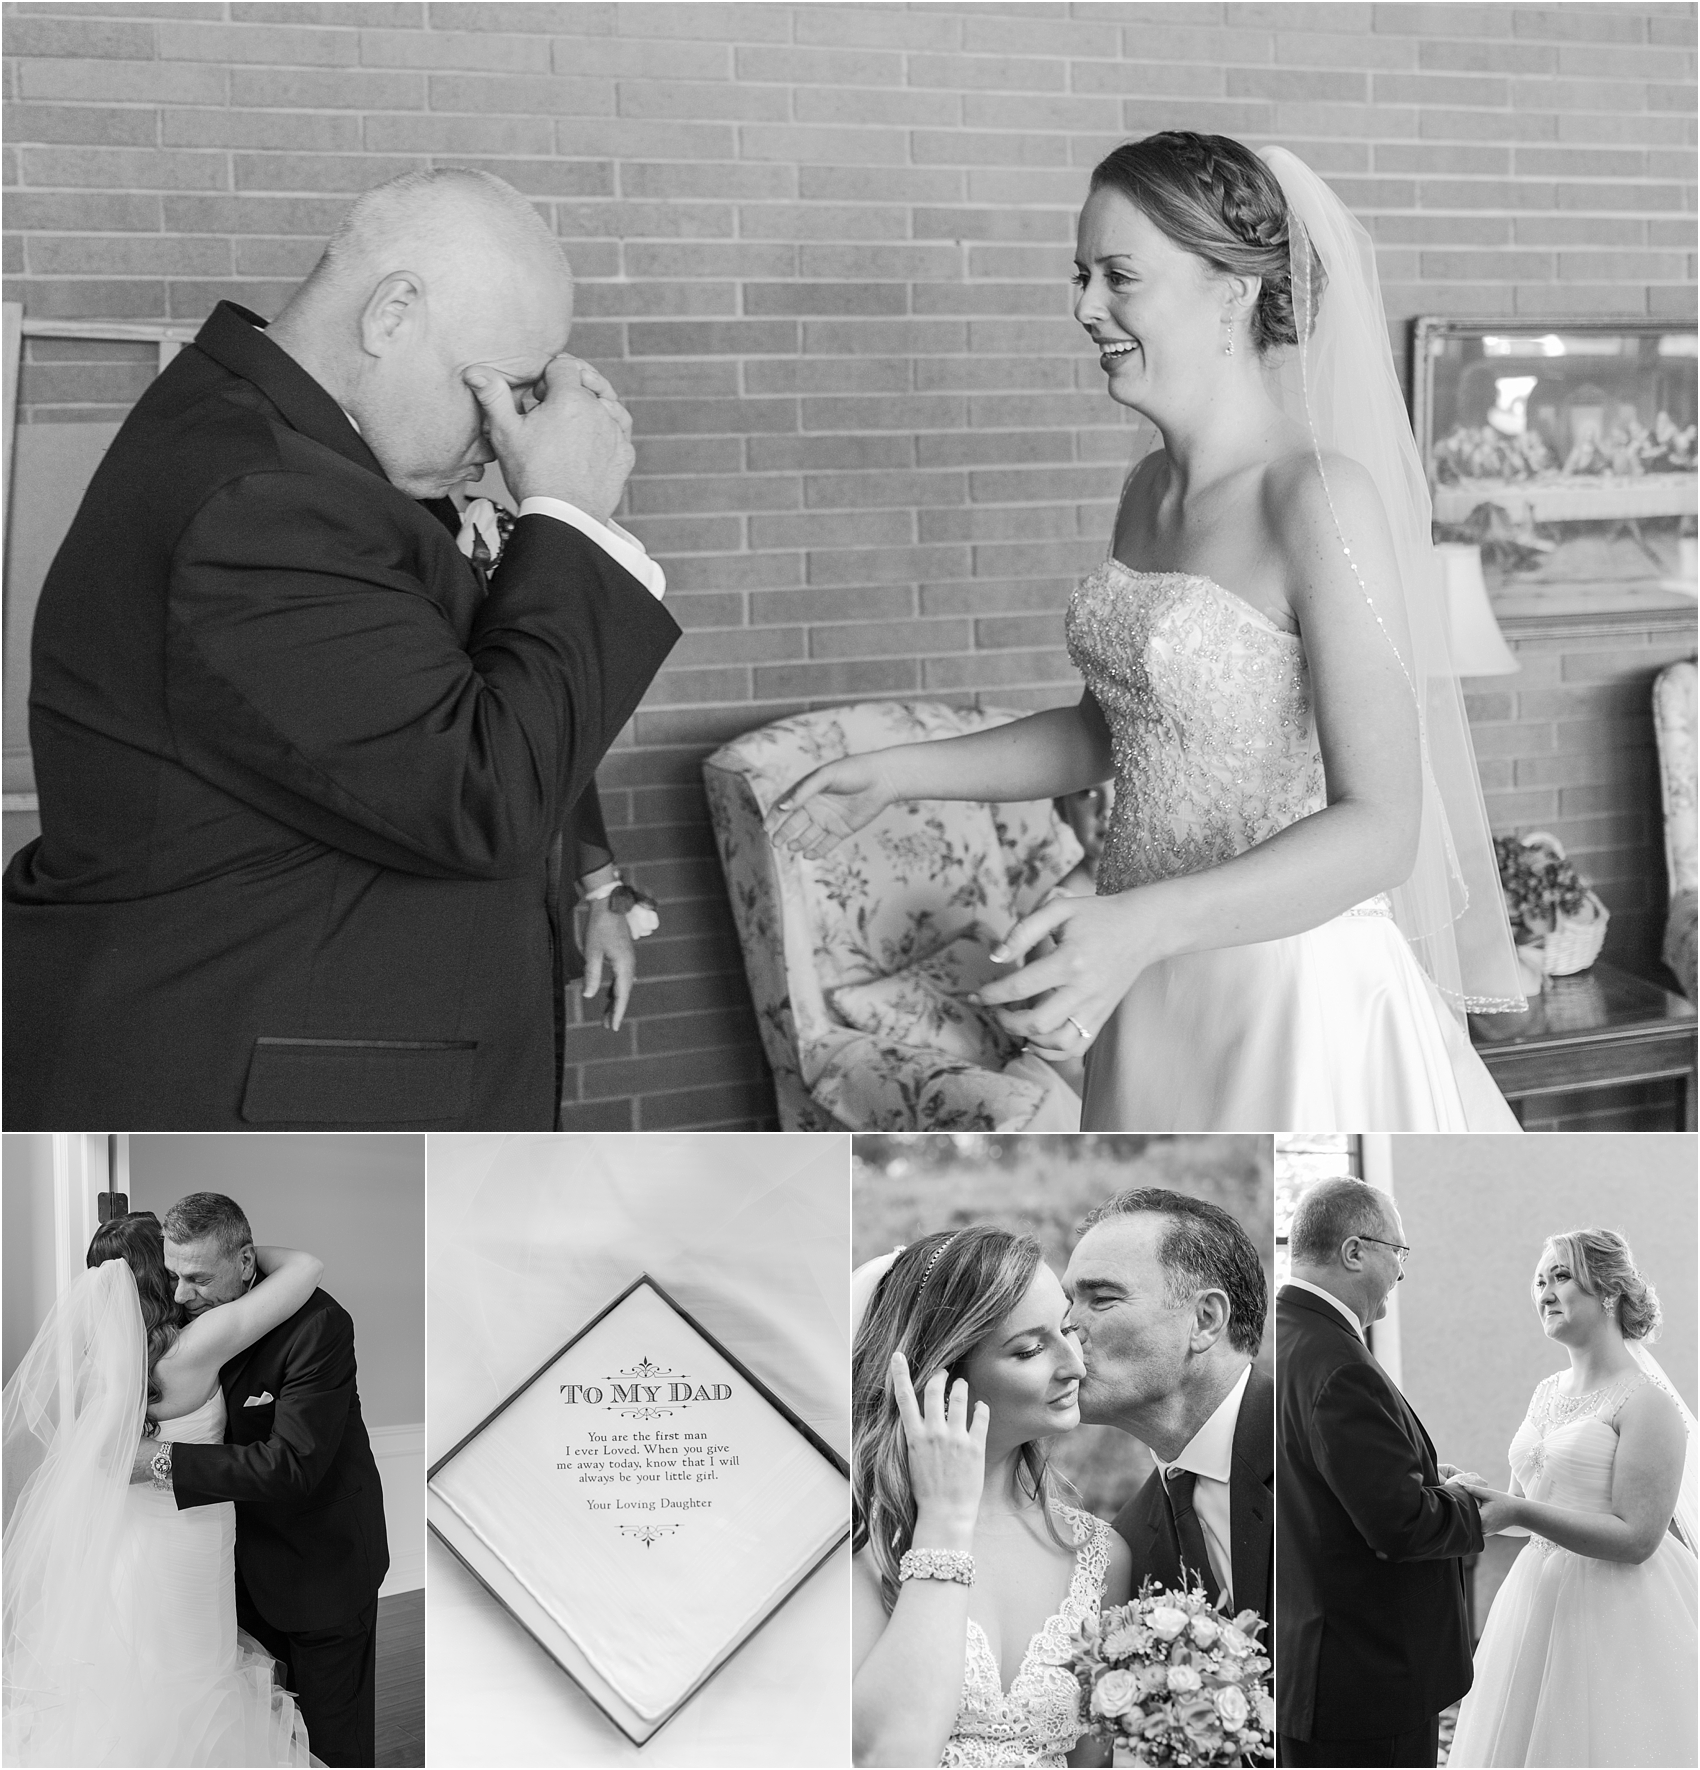 father-and-bride-share-emotional-first-look-on-wedding-day-photos-in-detroit-michigan-by-courtney-carolyn-photography_0082.jpg